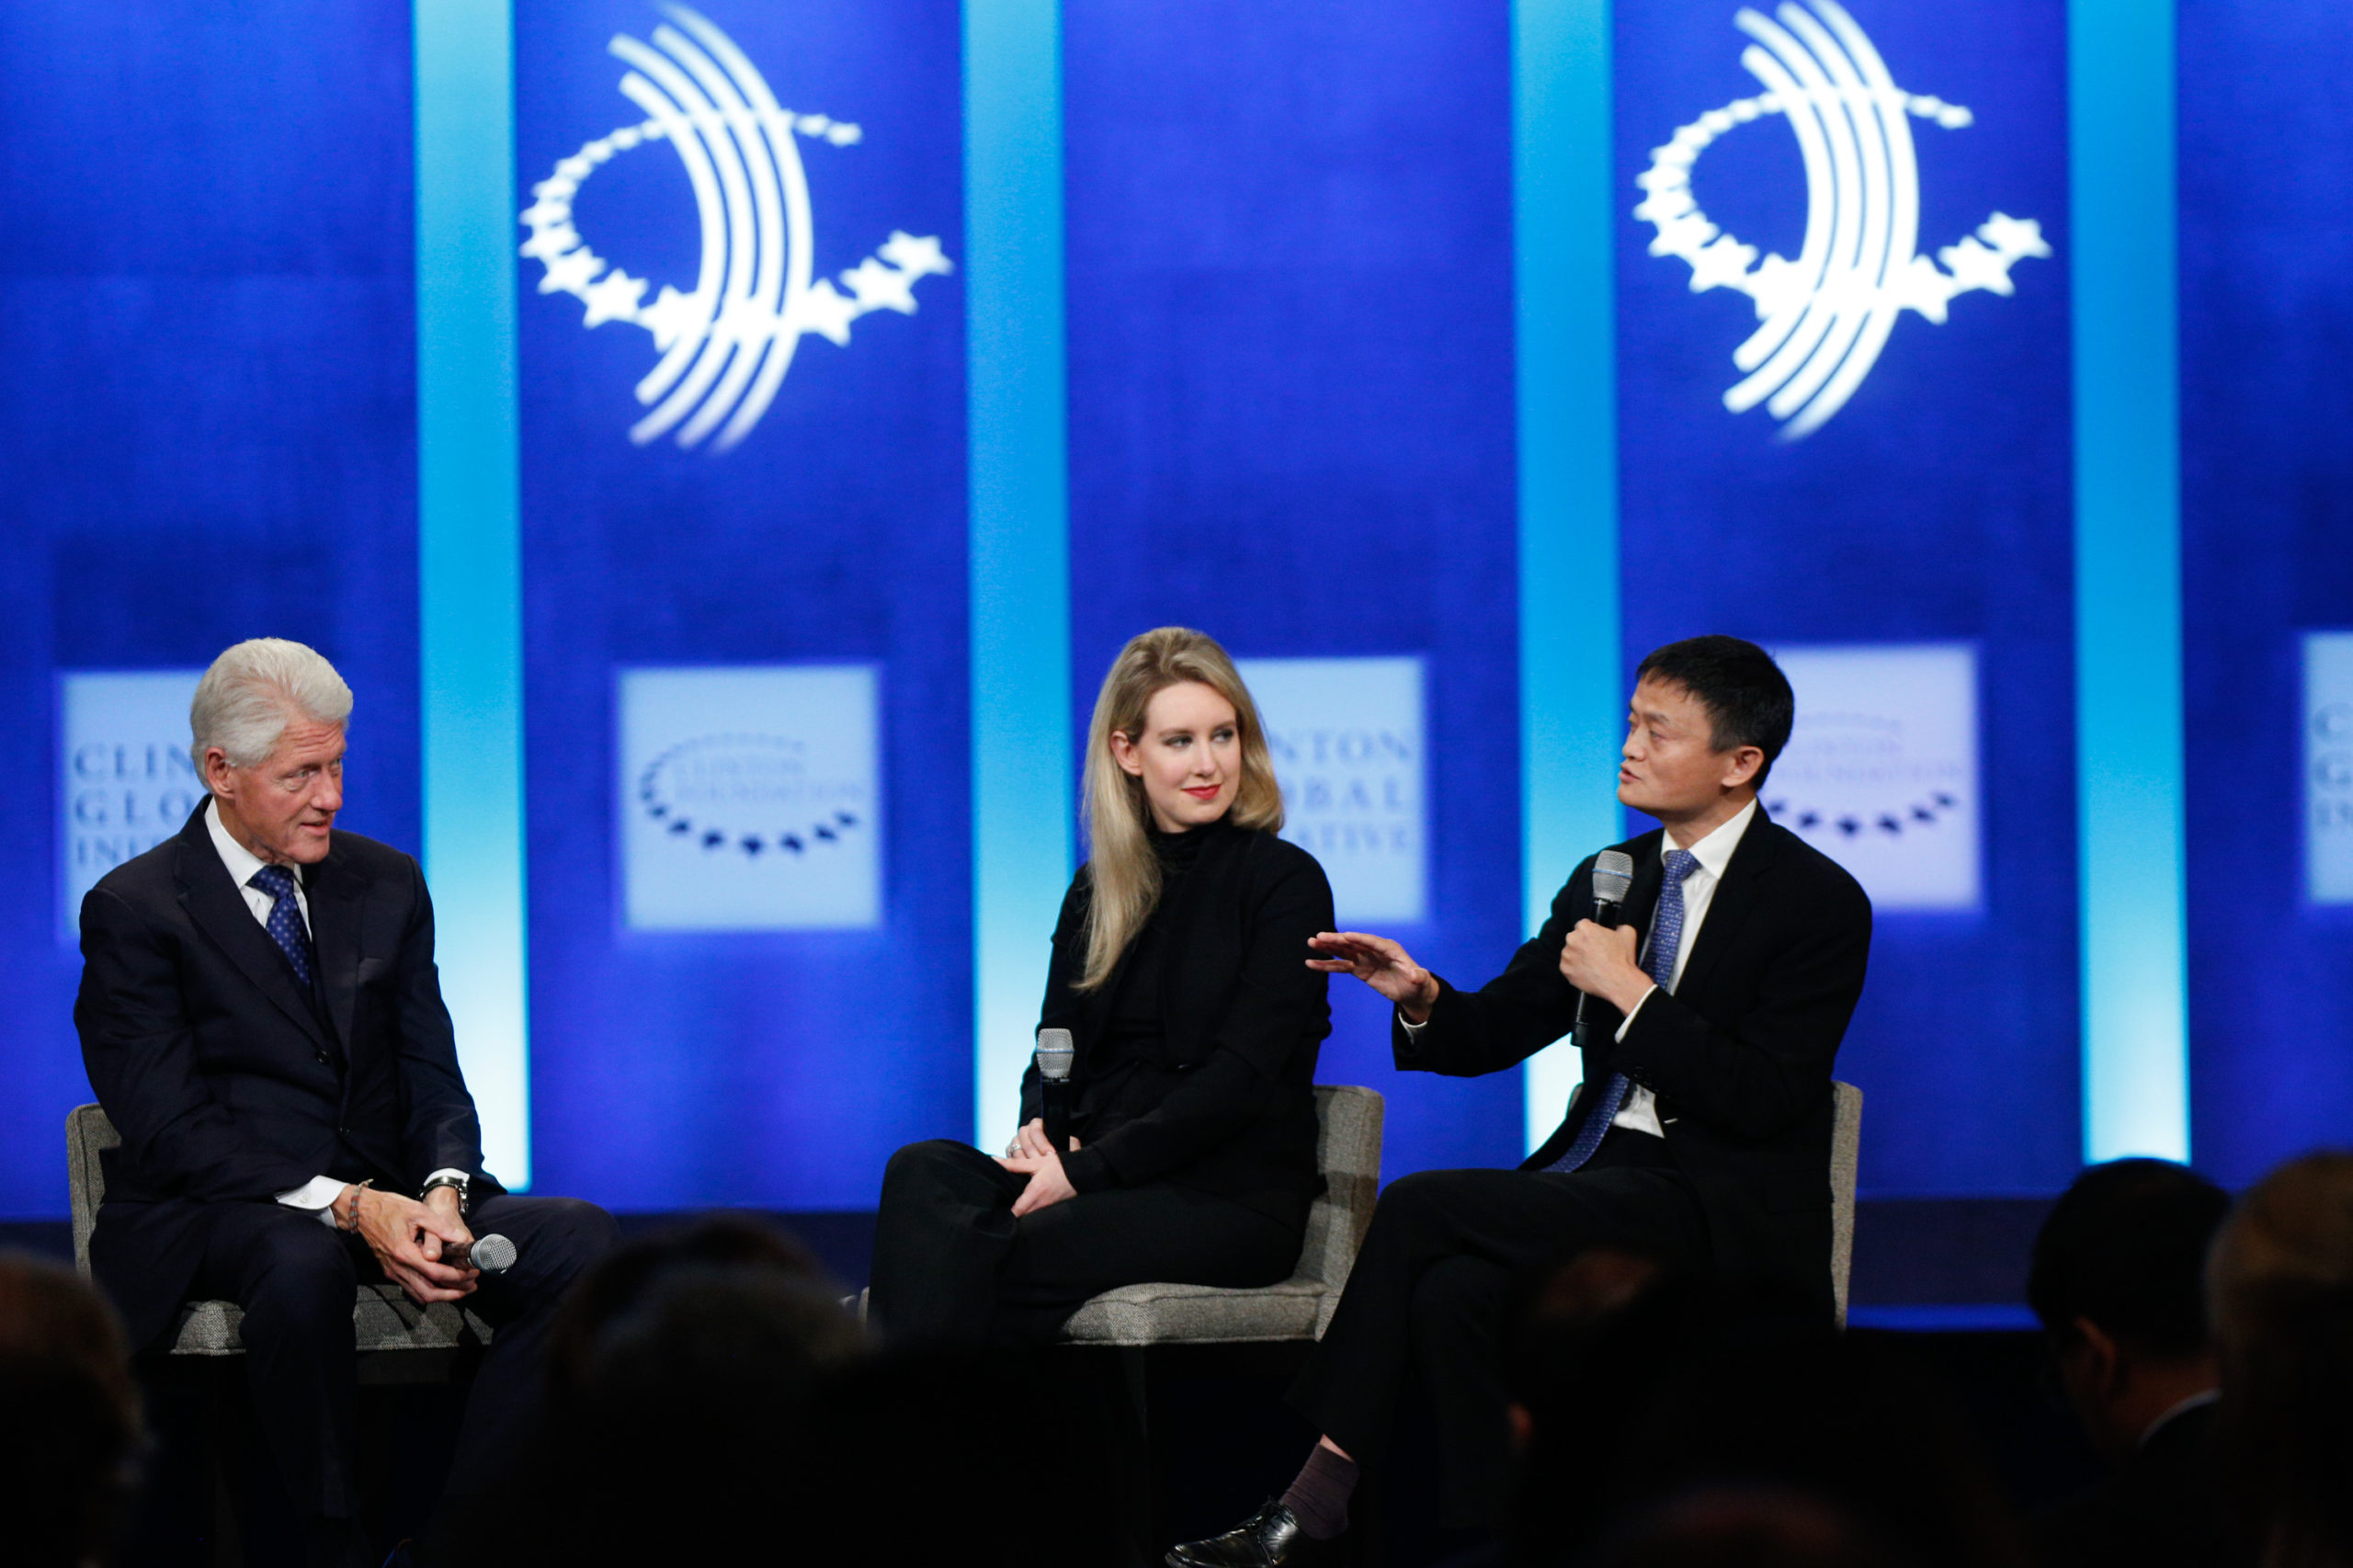 Jack Ma, Executive Chairman of Alibaba Group speaks as U.S. President Bill Clinton and Elizabeth Holmes, founder and CEO of Theranos, listen during the closing session of the Clinton Global Initiative 2015 on September 29, 2015 in New York City. (Photo by JP Yim/Getty Images)